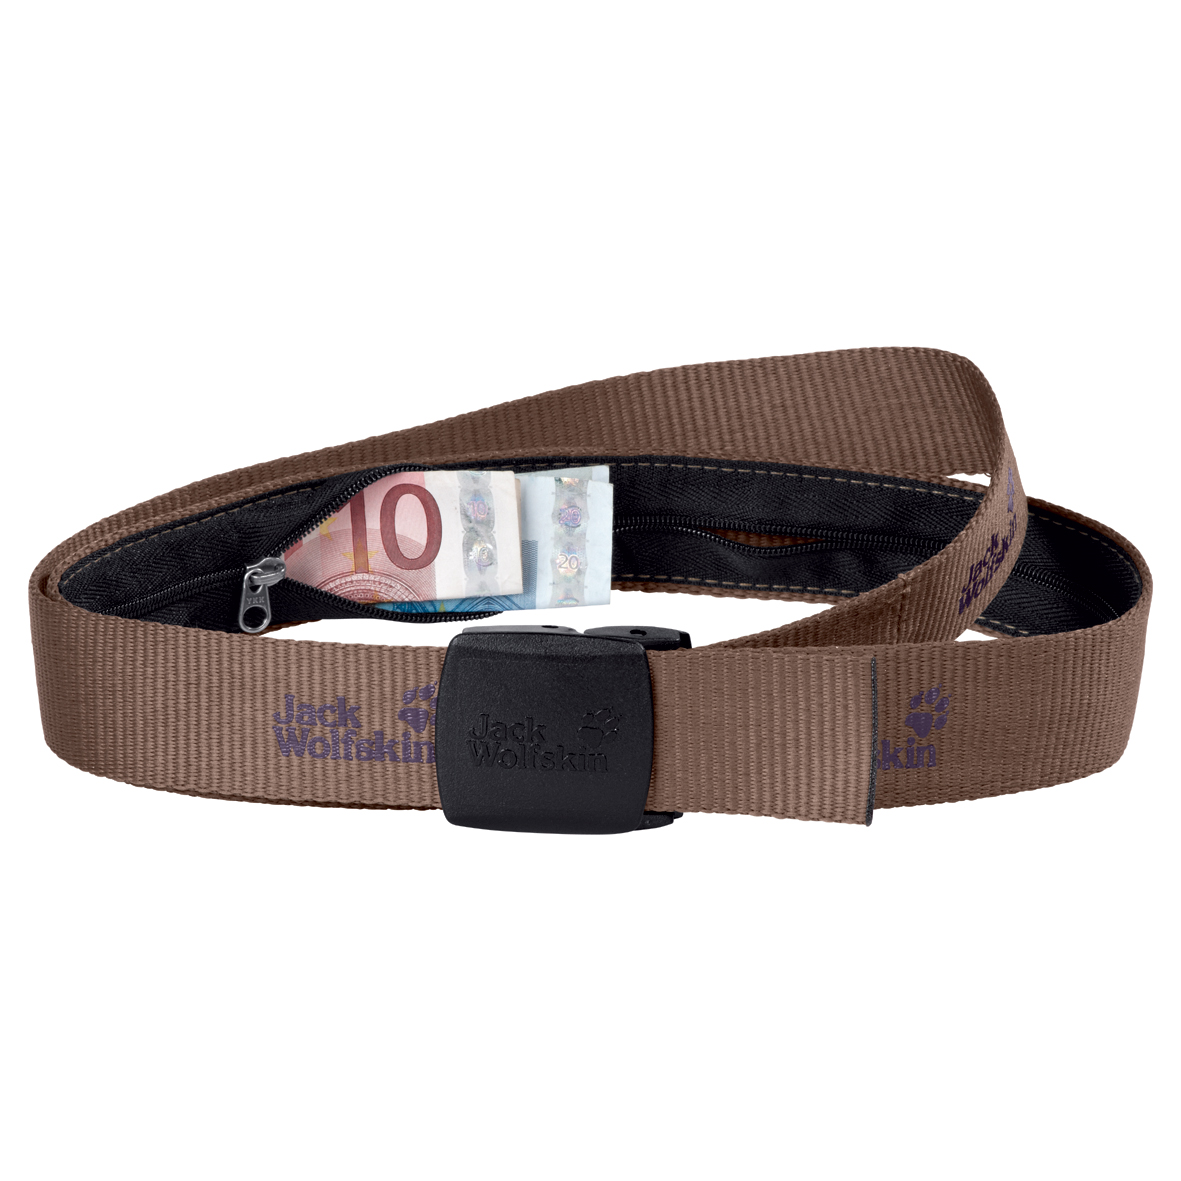 JACK WOLFSKIN SECRET BELT WIDE